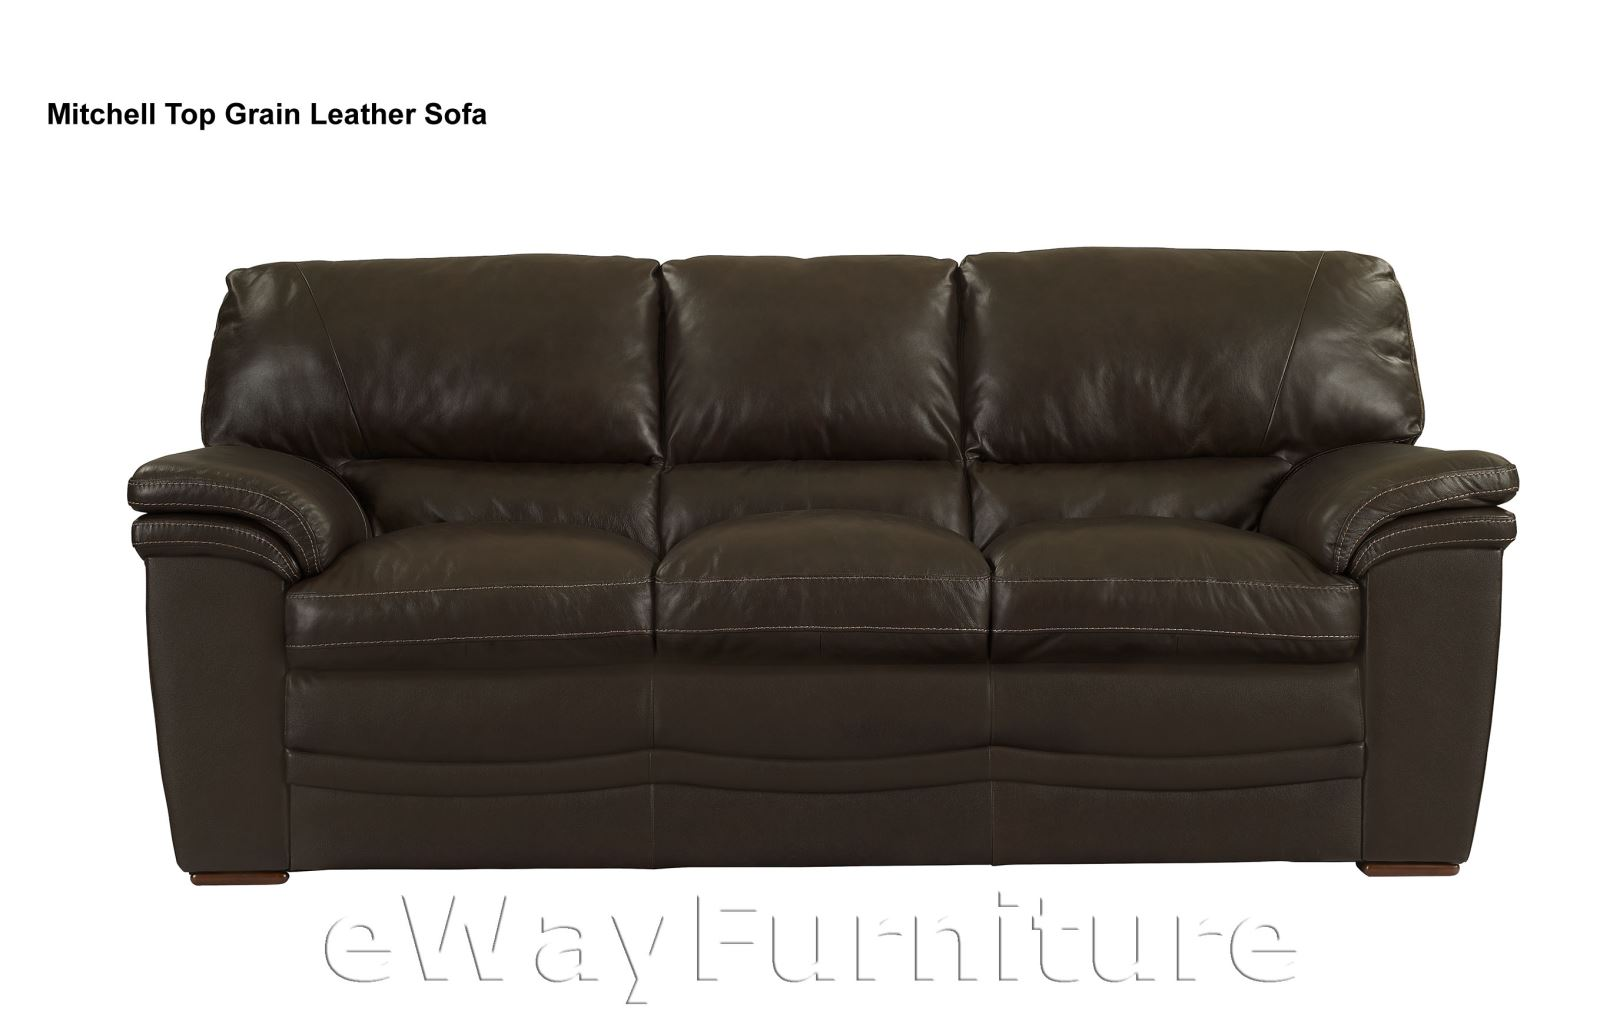 Mitchell Top Grain Leather Sofa